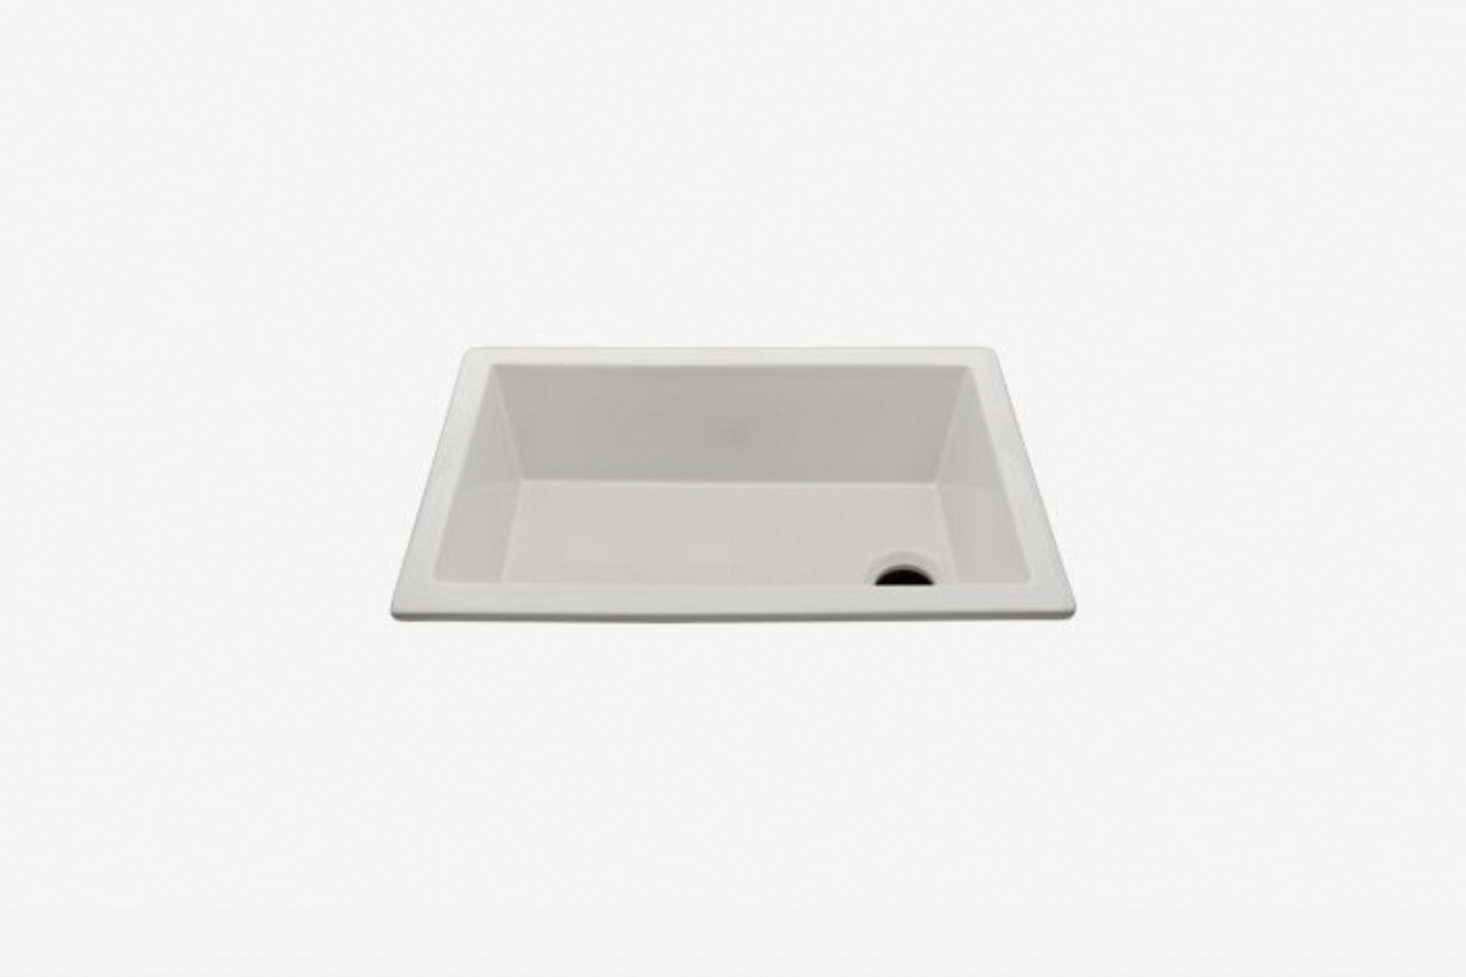 The Waterworks Clayburn Fireclay Bar Sink with End Drain is $9 at Waterworks.